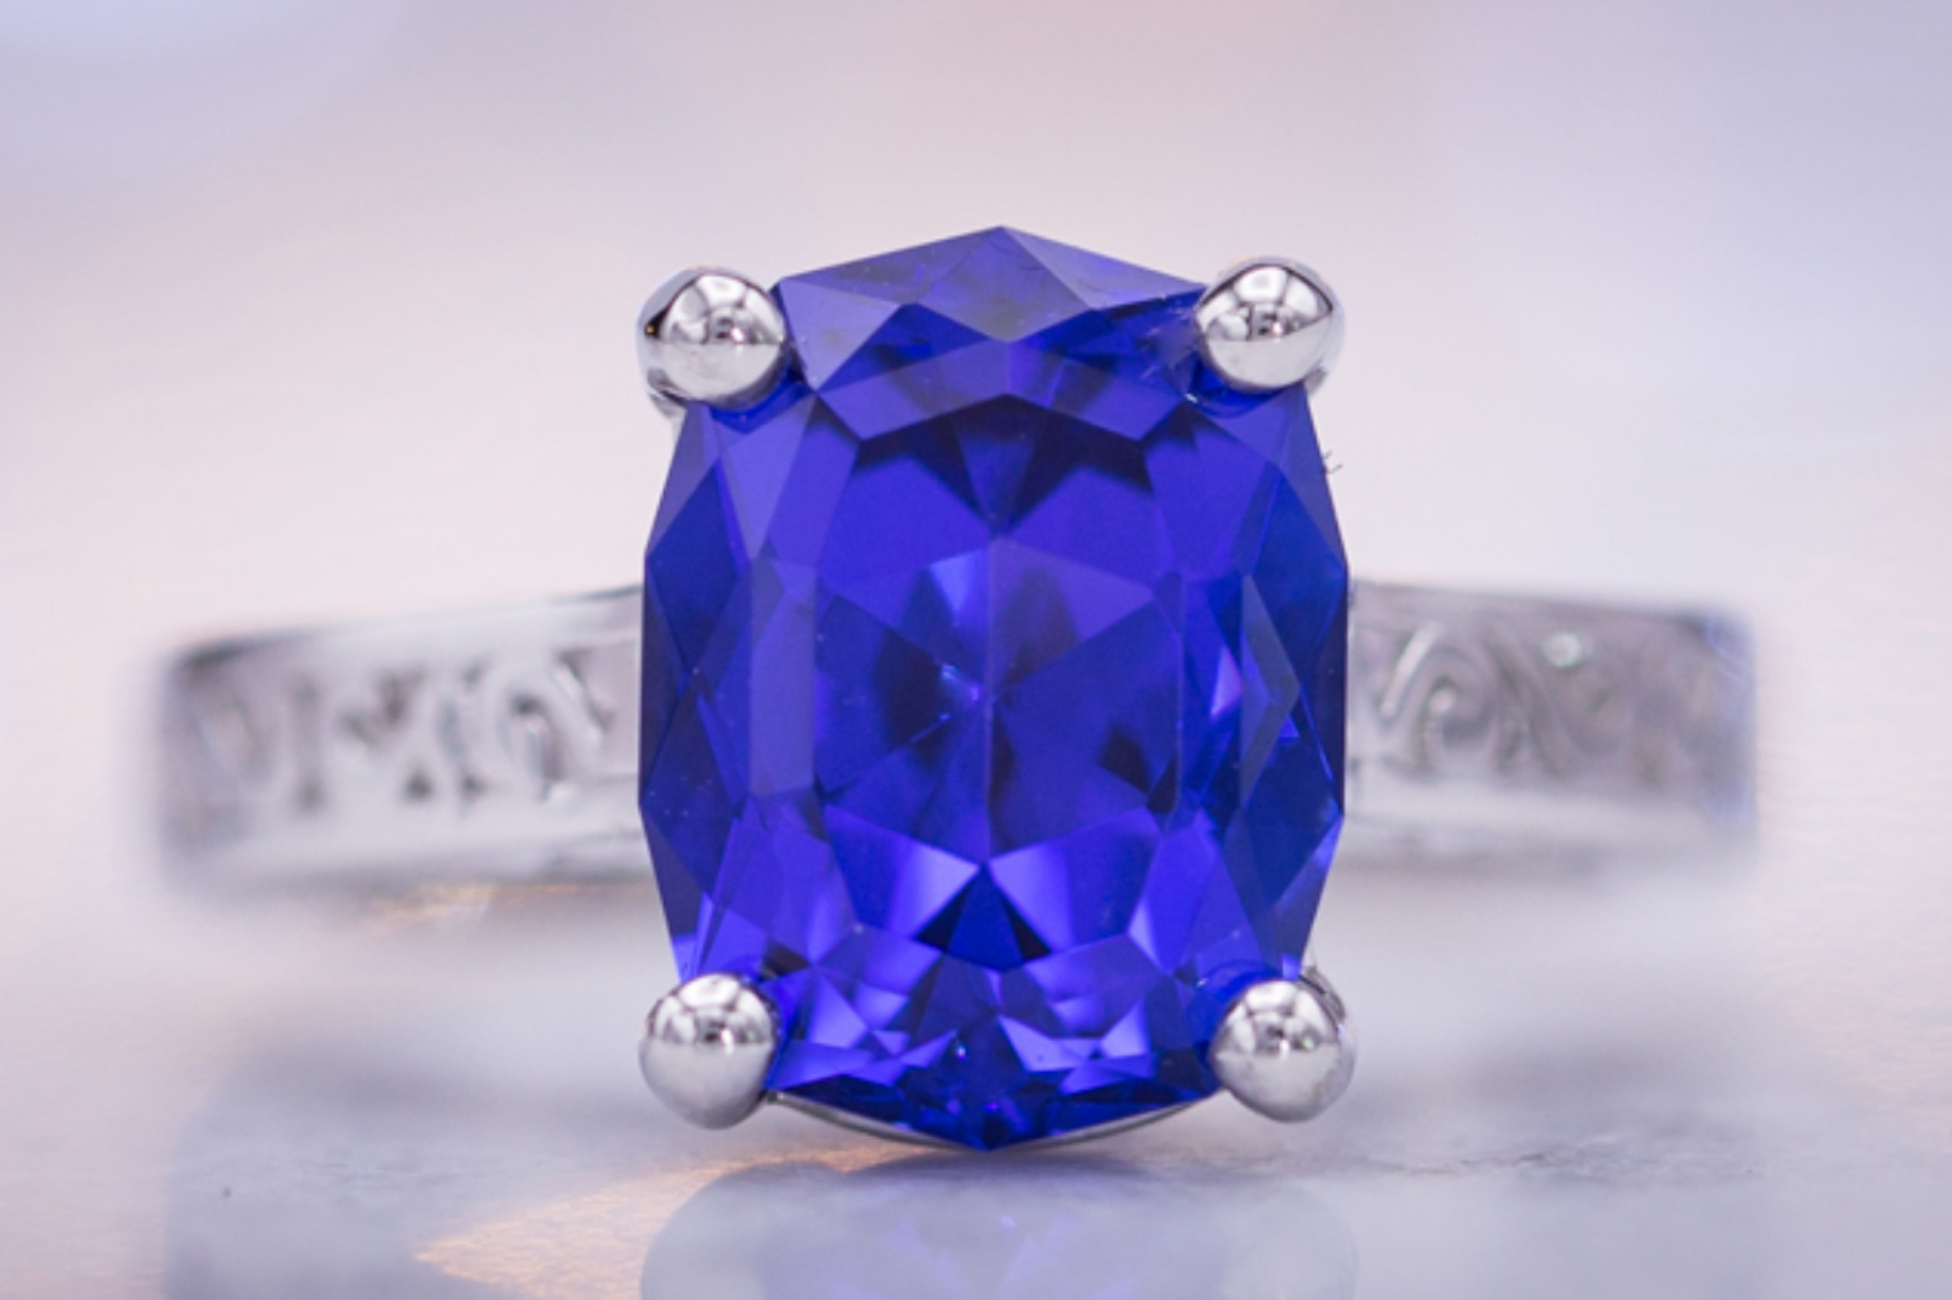 Platinum engagement ring with custom cut elongated cushion tanzanite